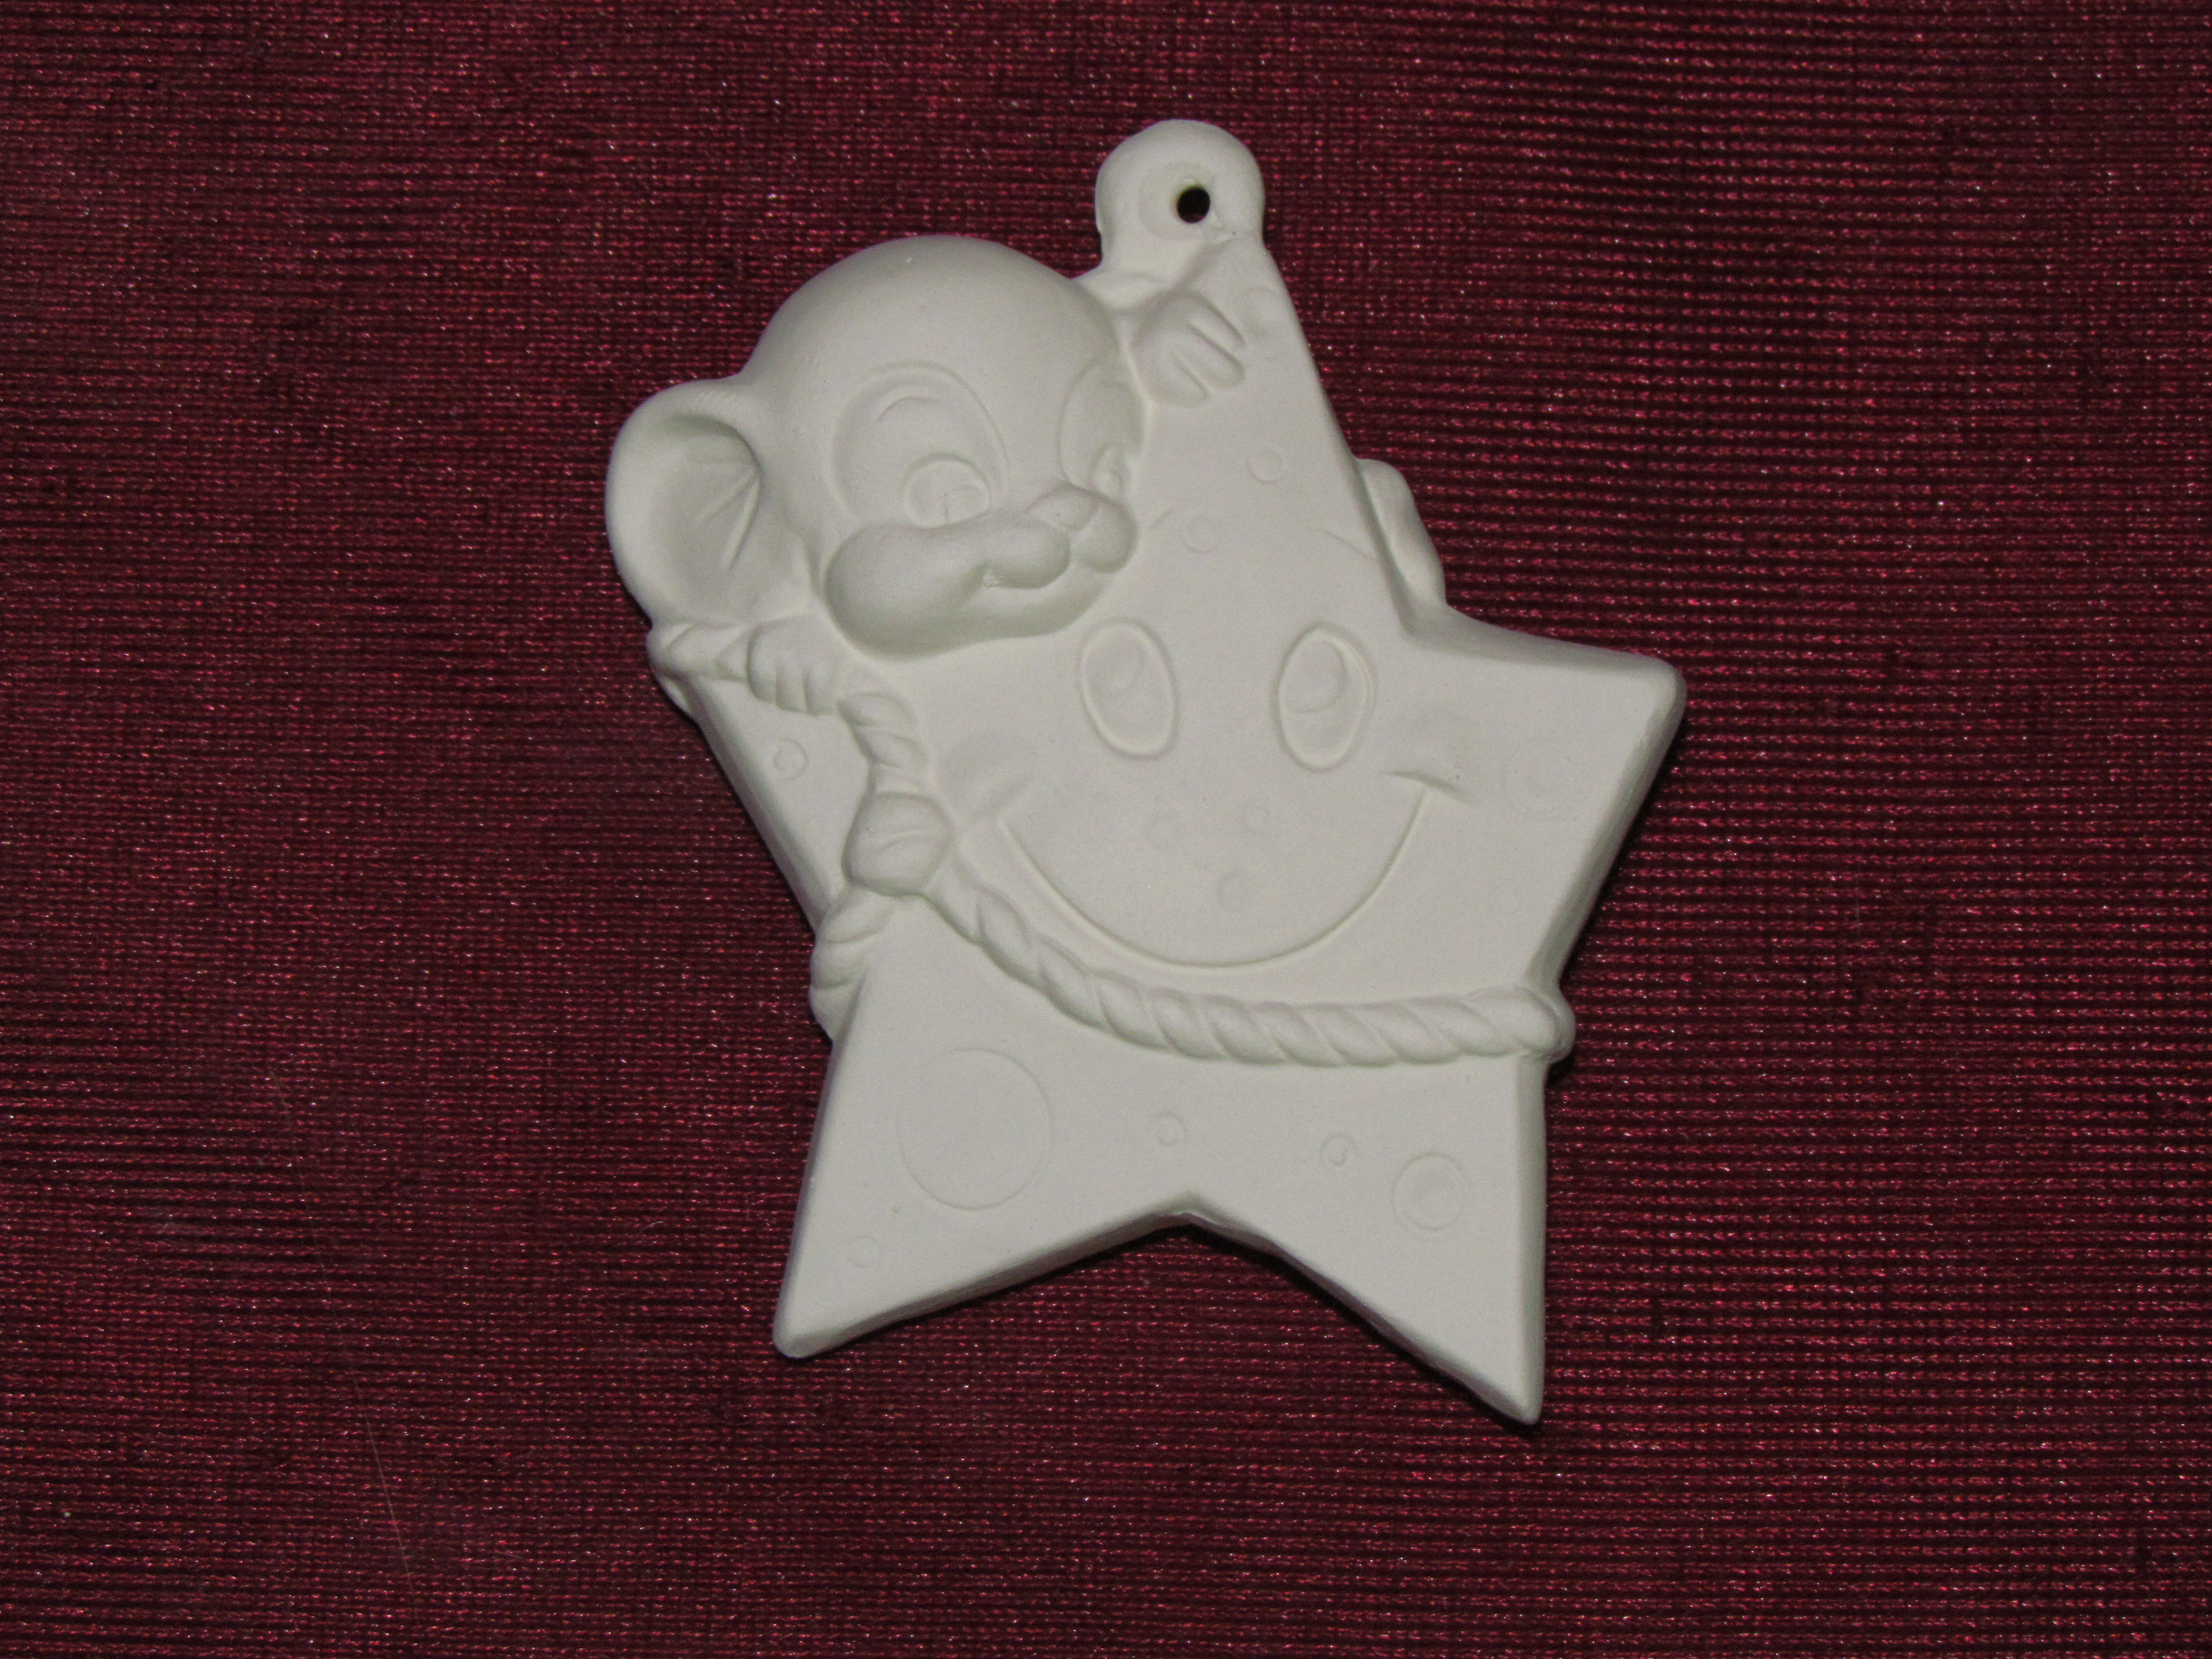 Mouse Christmas Ornaments Asst #1 Set of 6 Ready to Paint Ceramic Bisque